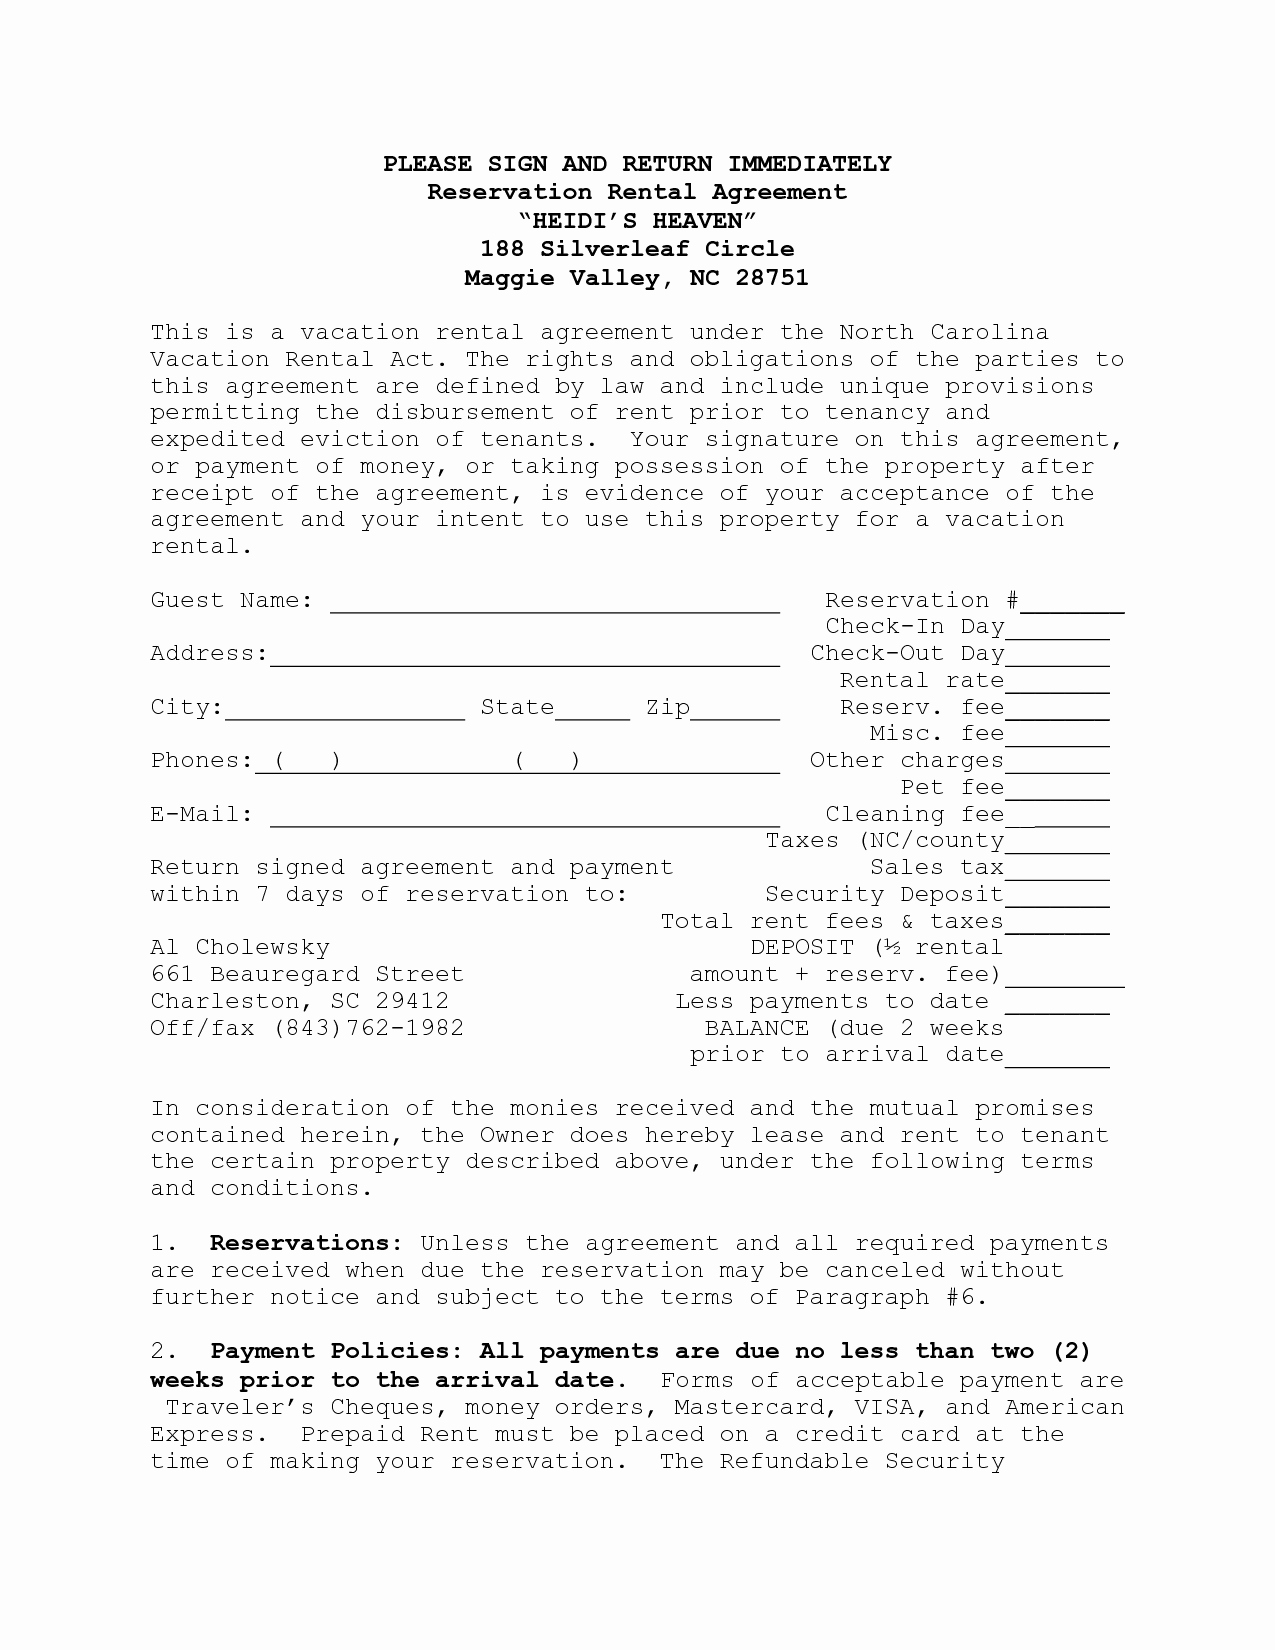 House Lease Agreement Template Awesome House Lease Agreement Template